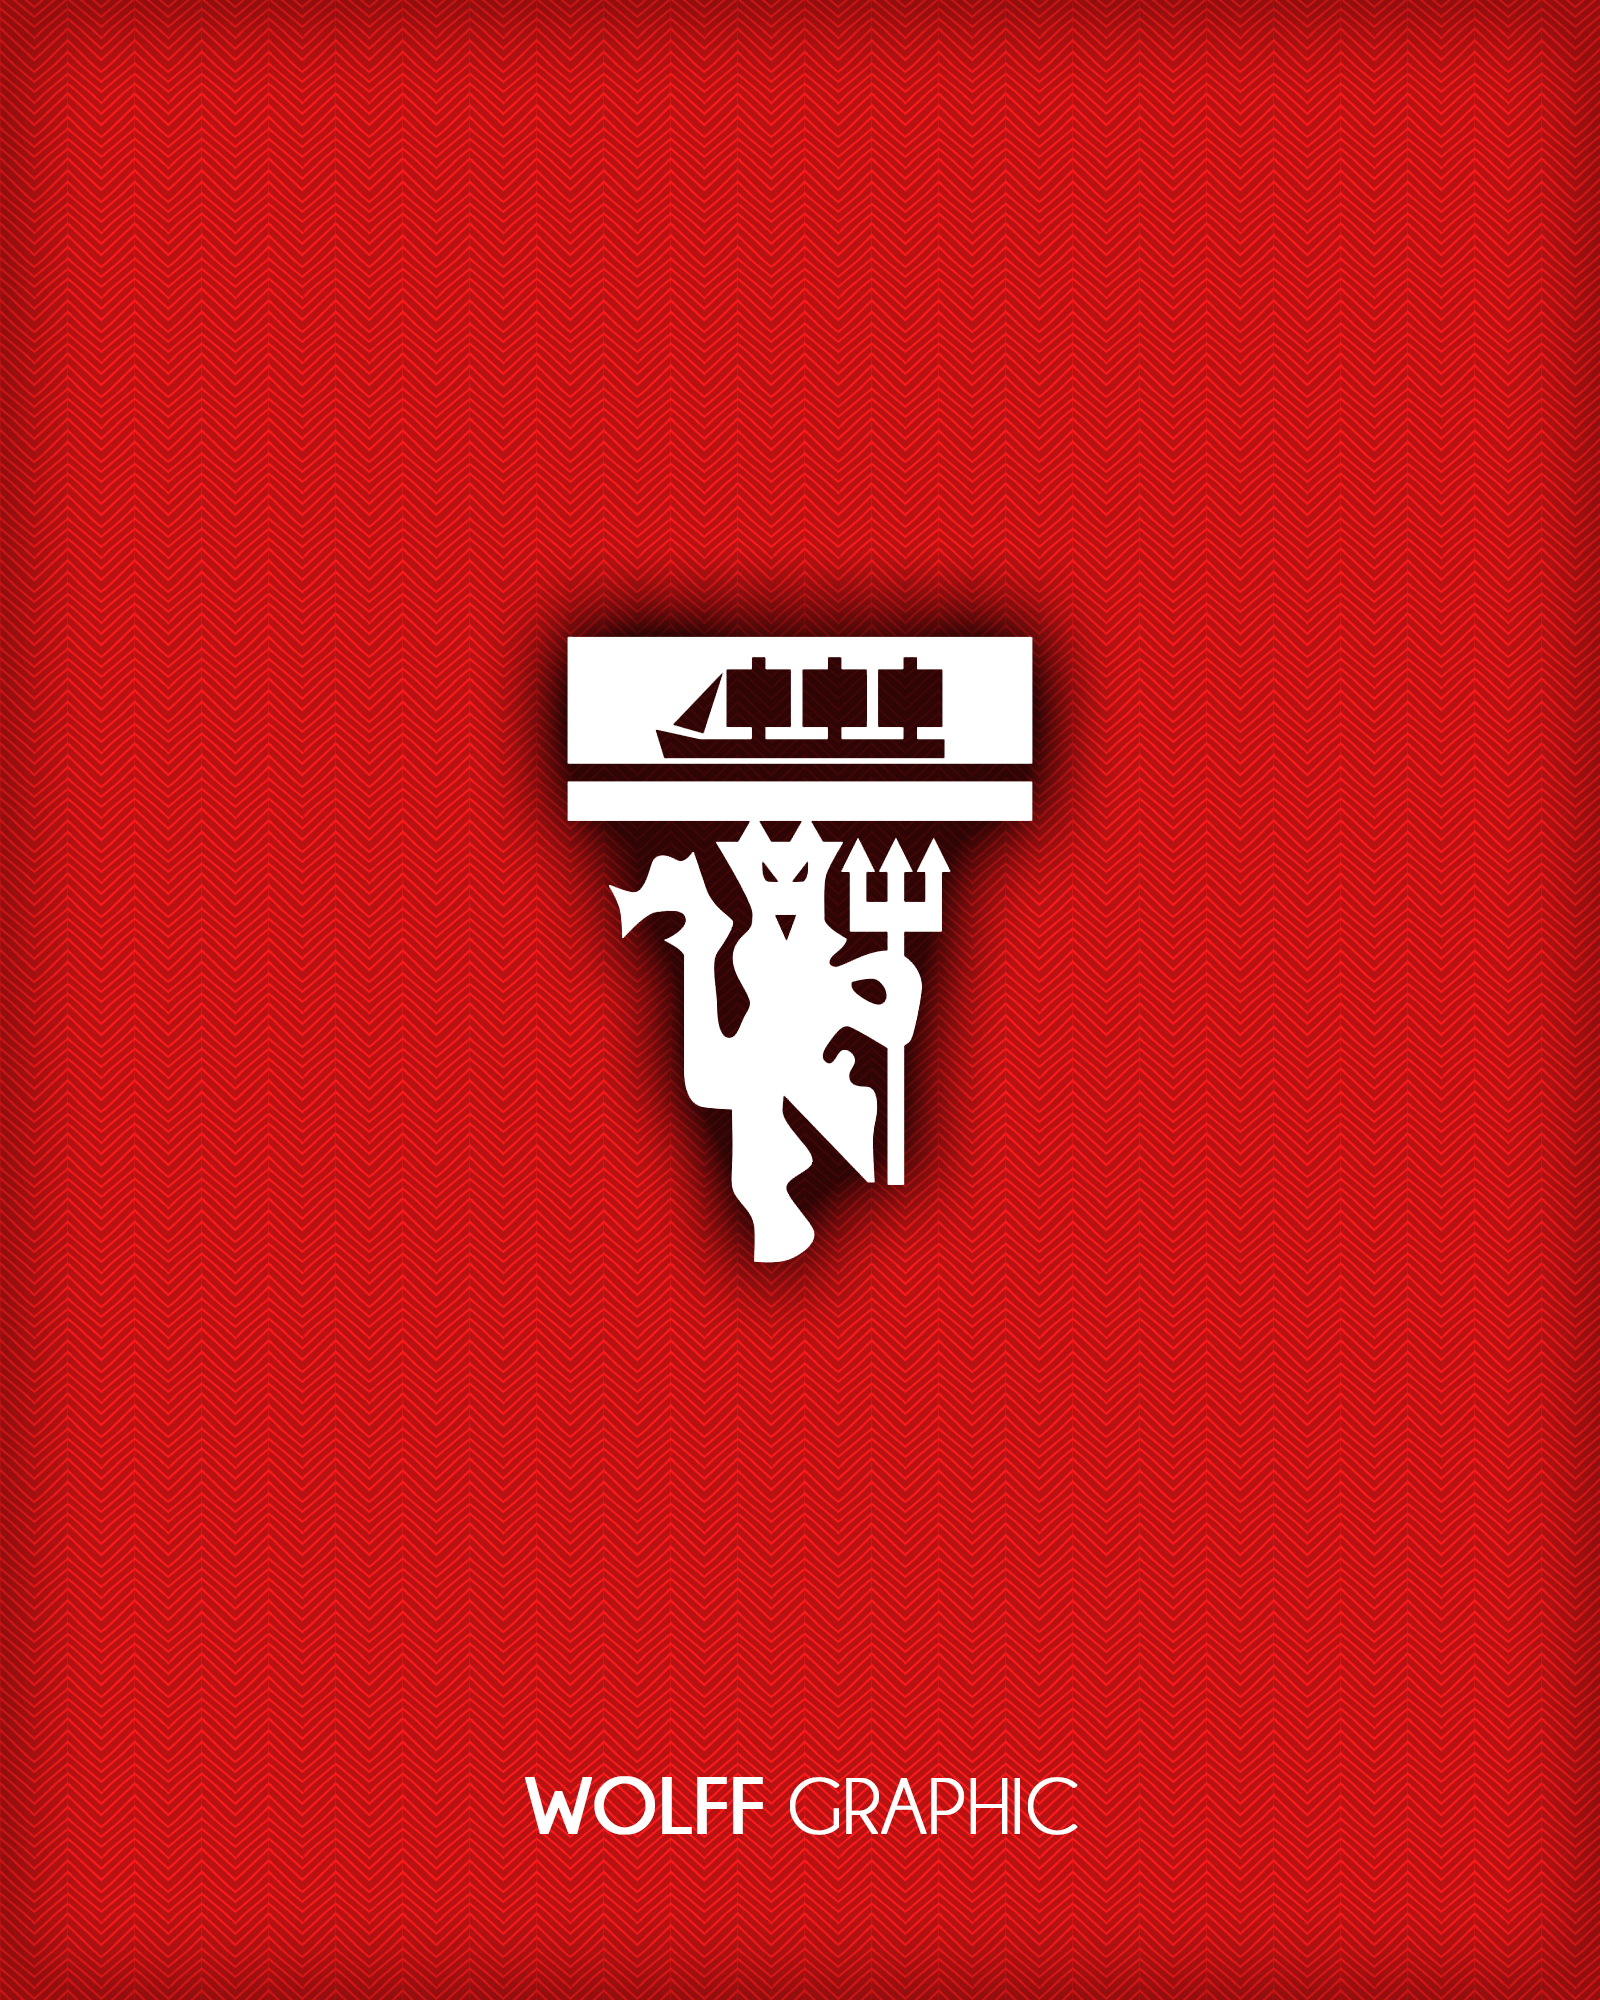 Manchester united devil logo by wolff10 on deviantart manchester united devil logo by wolff10 manchester united devil logo by wolff10 voltagebd Gallery